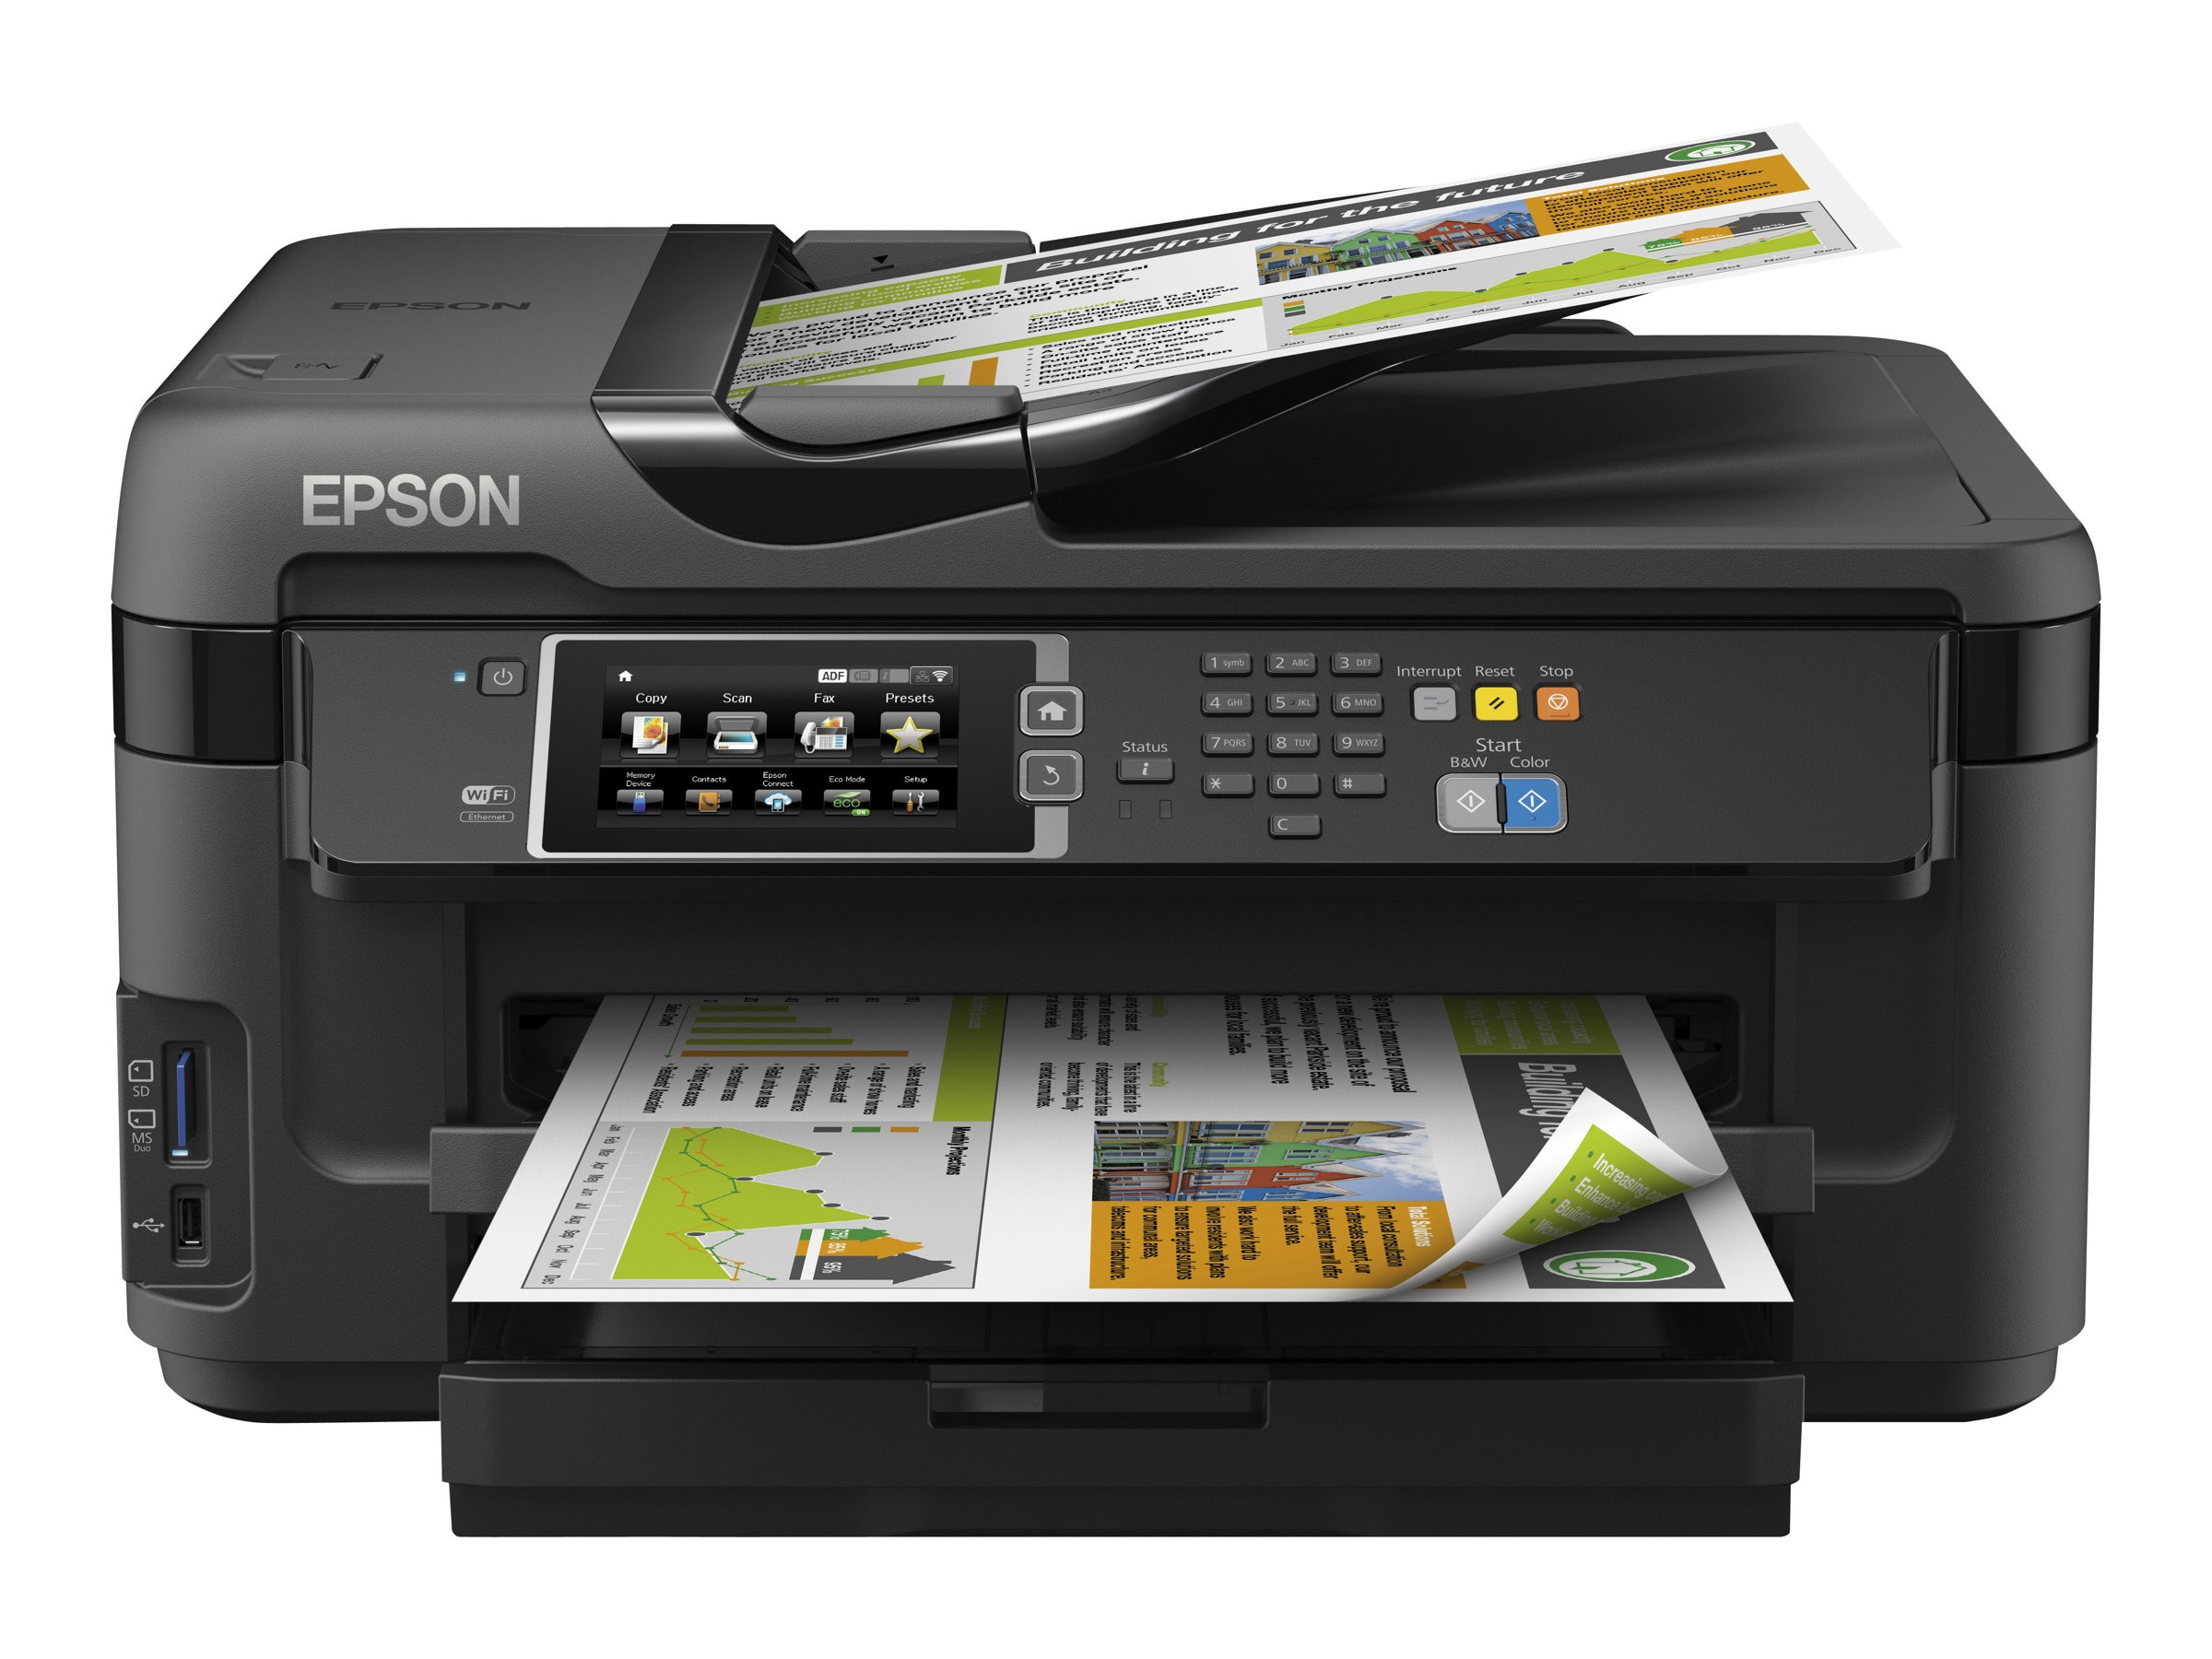 Epson WorkForce WF-7610 All-In-One Printer, C11CC98201